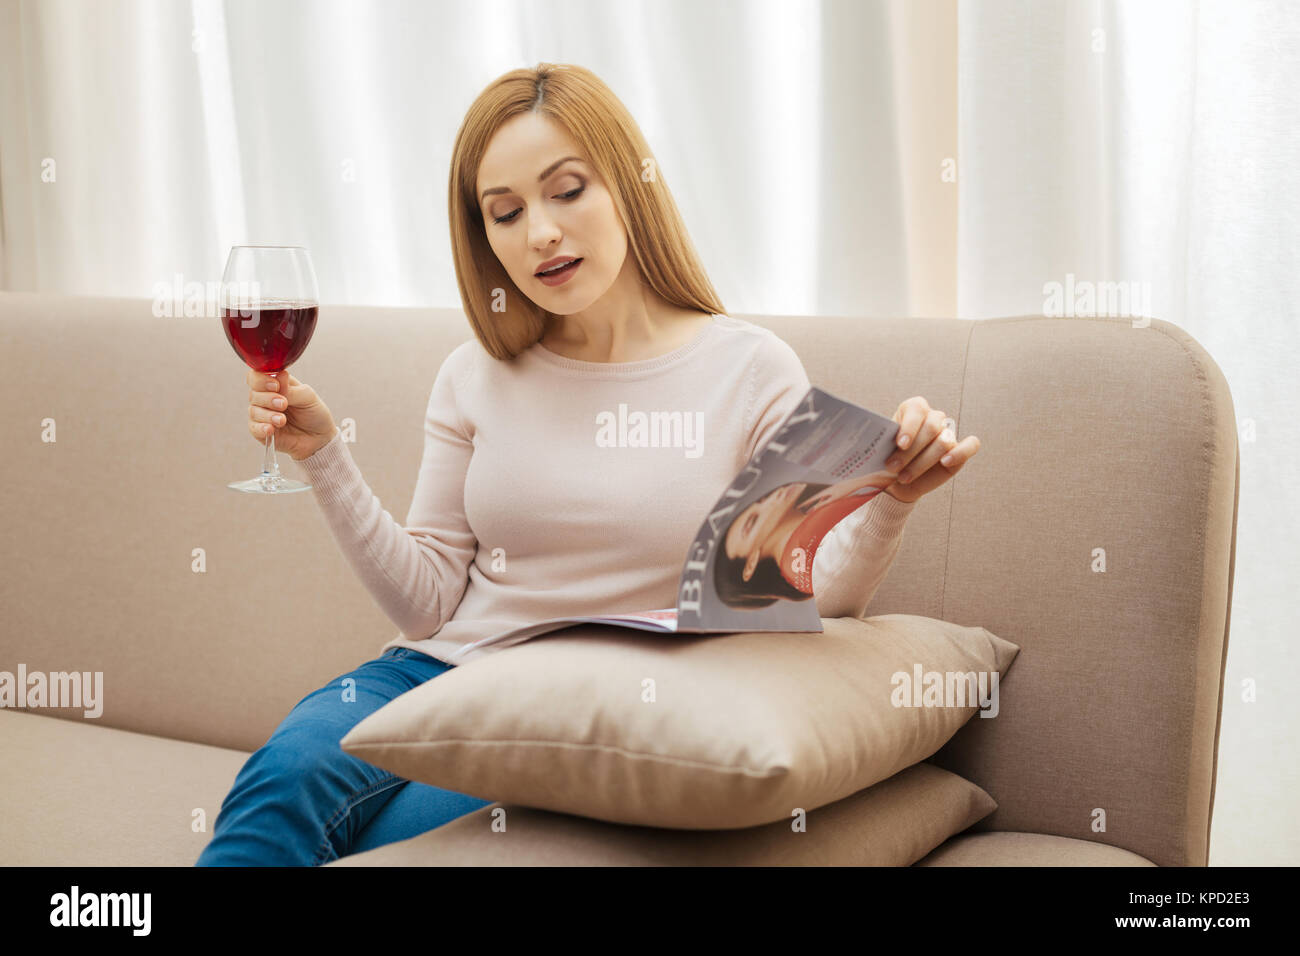 Beautiful woman with a glass of wine and magazine - Stock Image